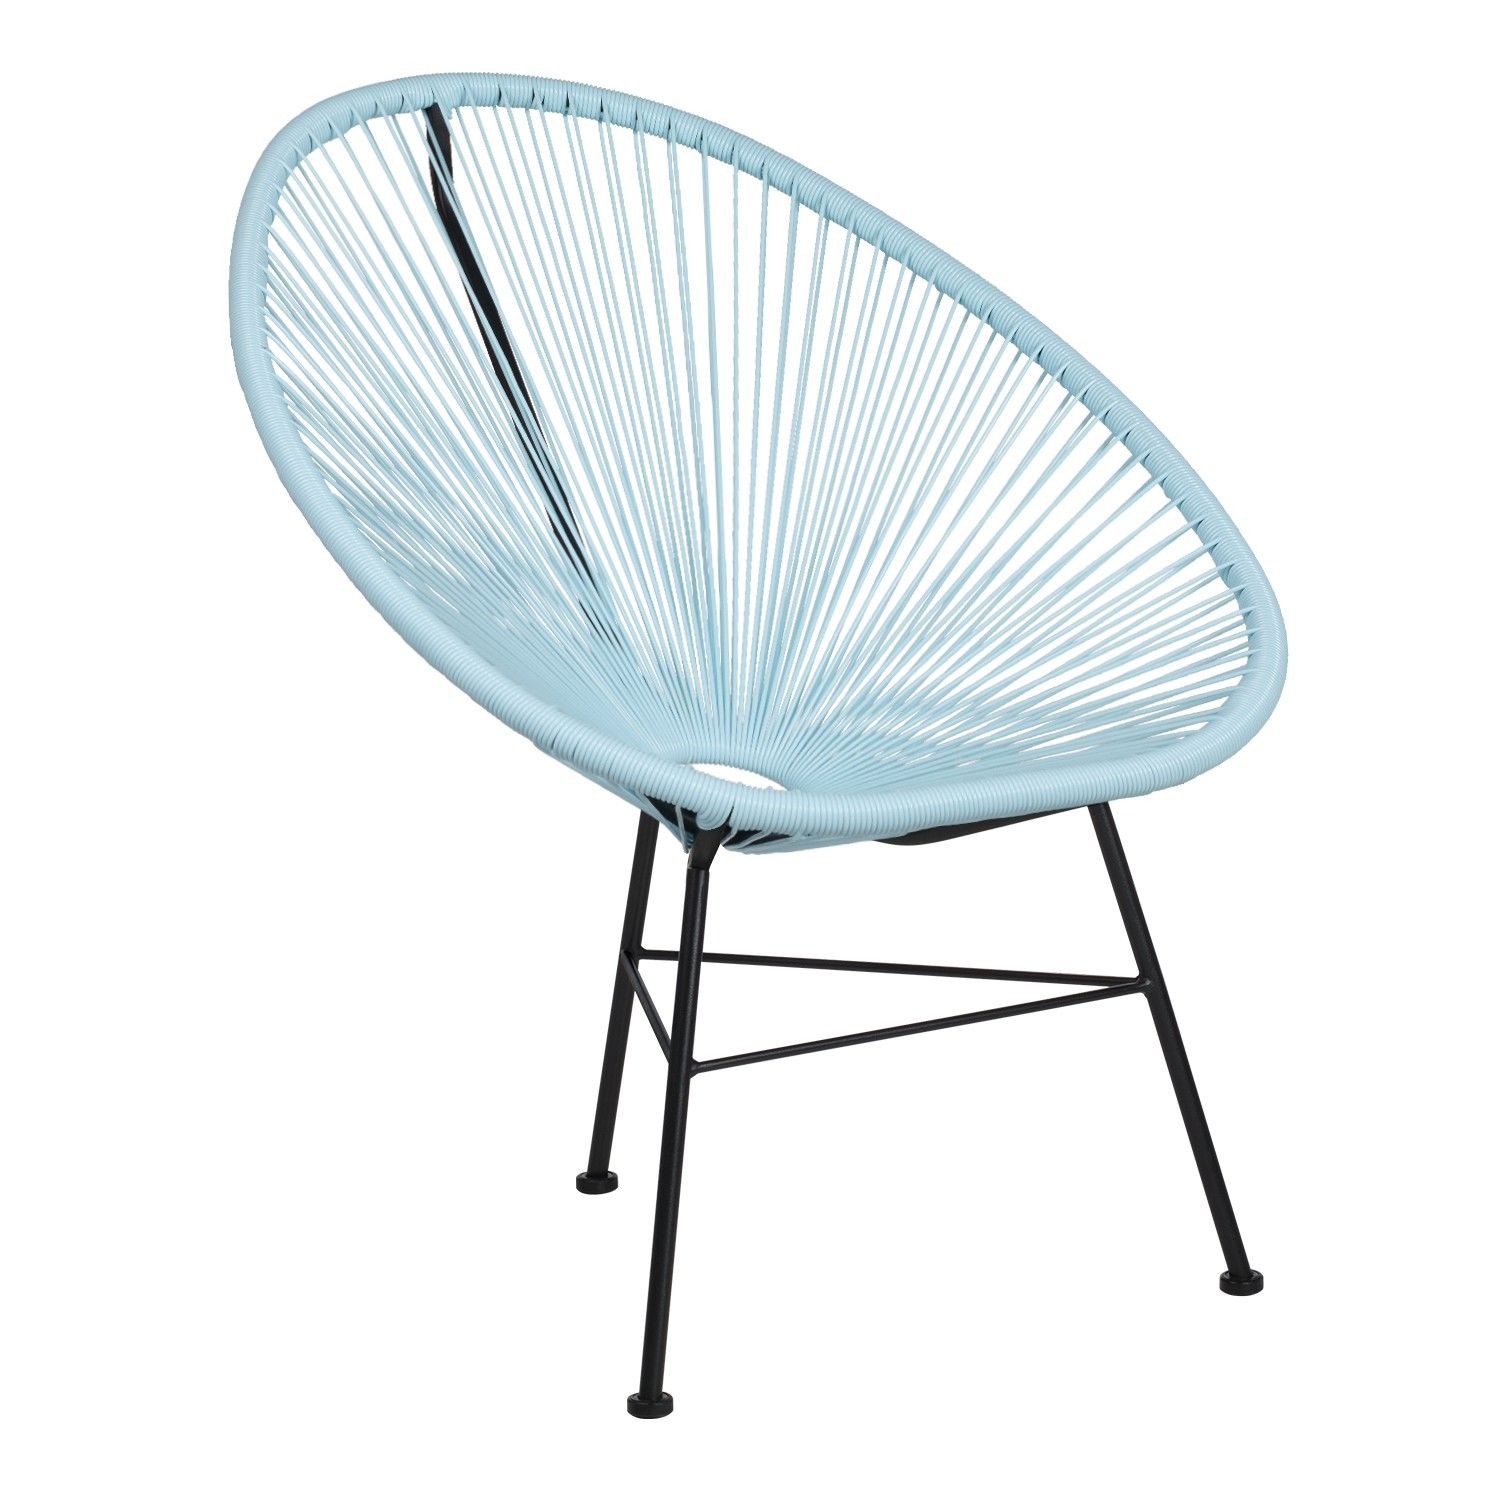 Mexico Chair Schaukelstuhl Stuhl New Acapulco In 2019 Wohnung Acapulco Decor Chair